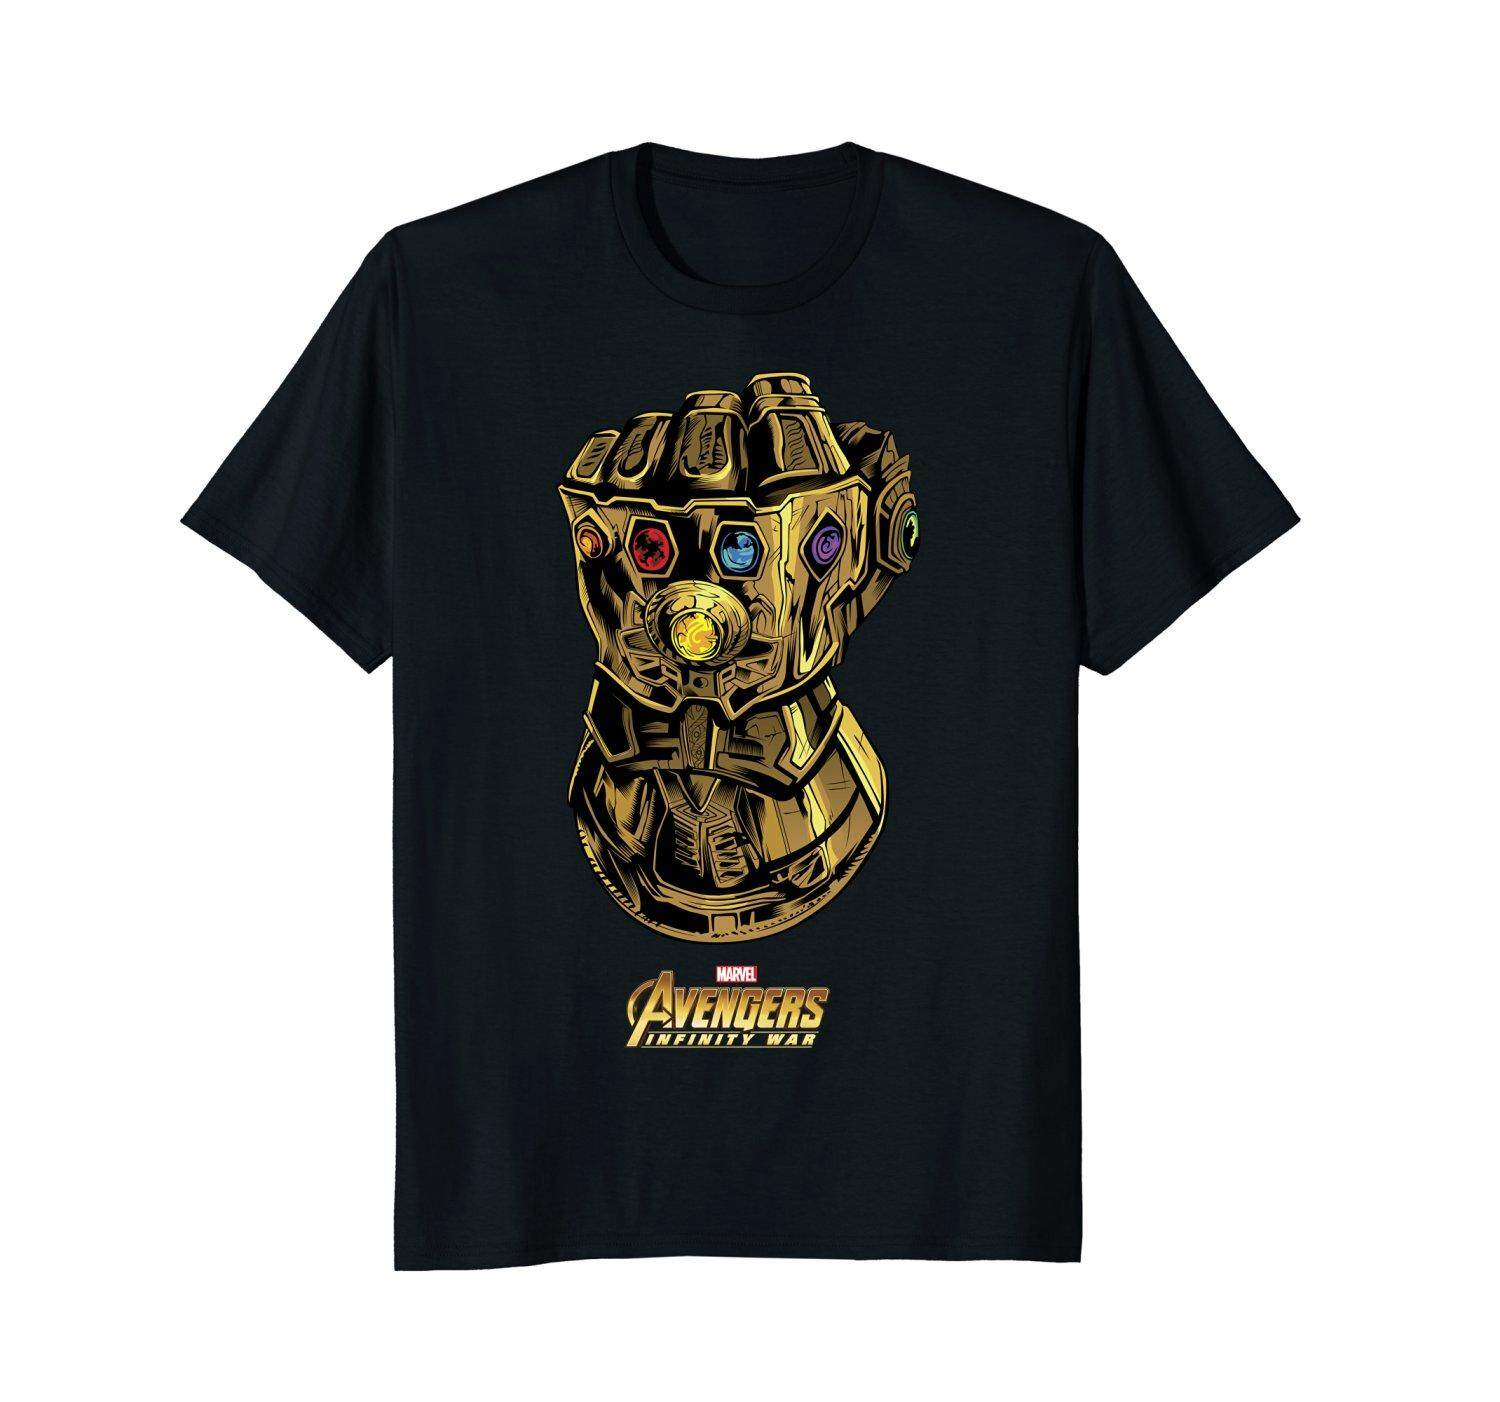 Marvel Avengers Infinity War Gauntlet Gems Graphic Fashion O Neck Men Tshirt Tee Black